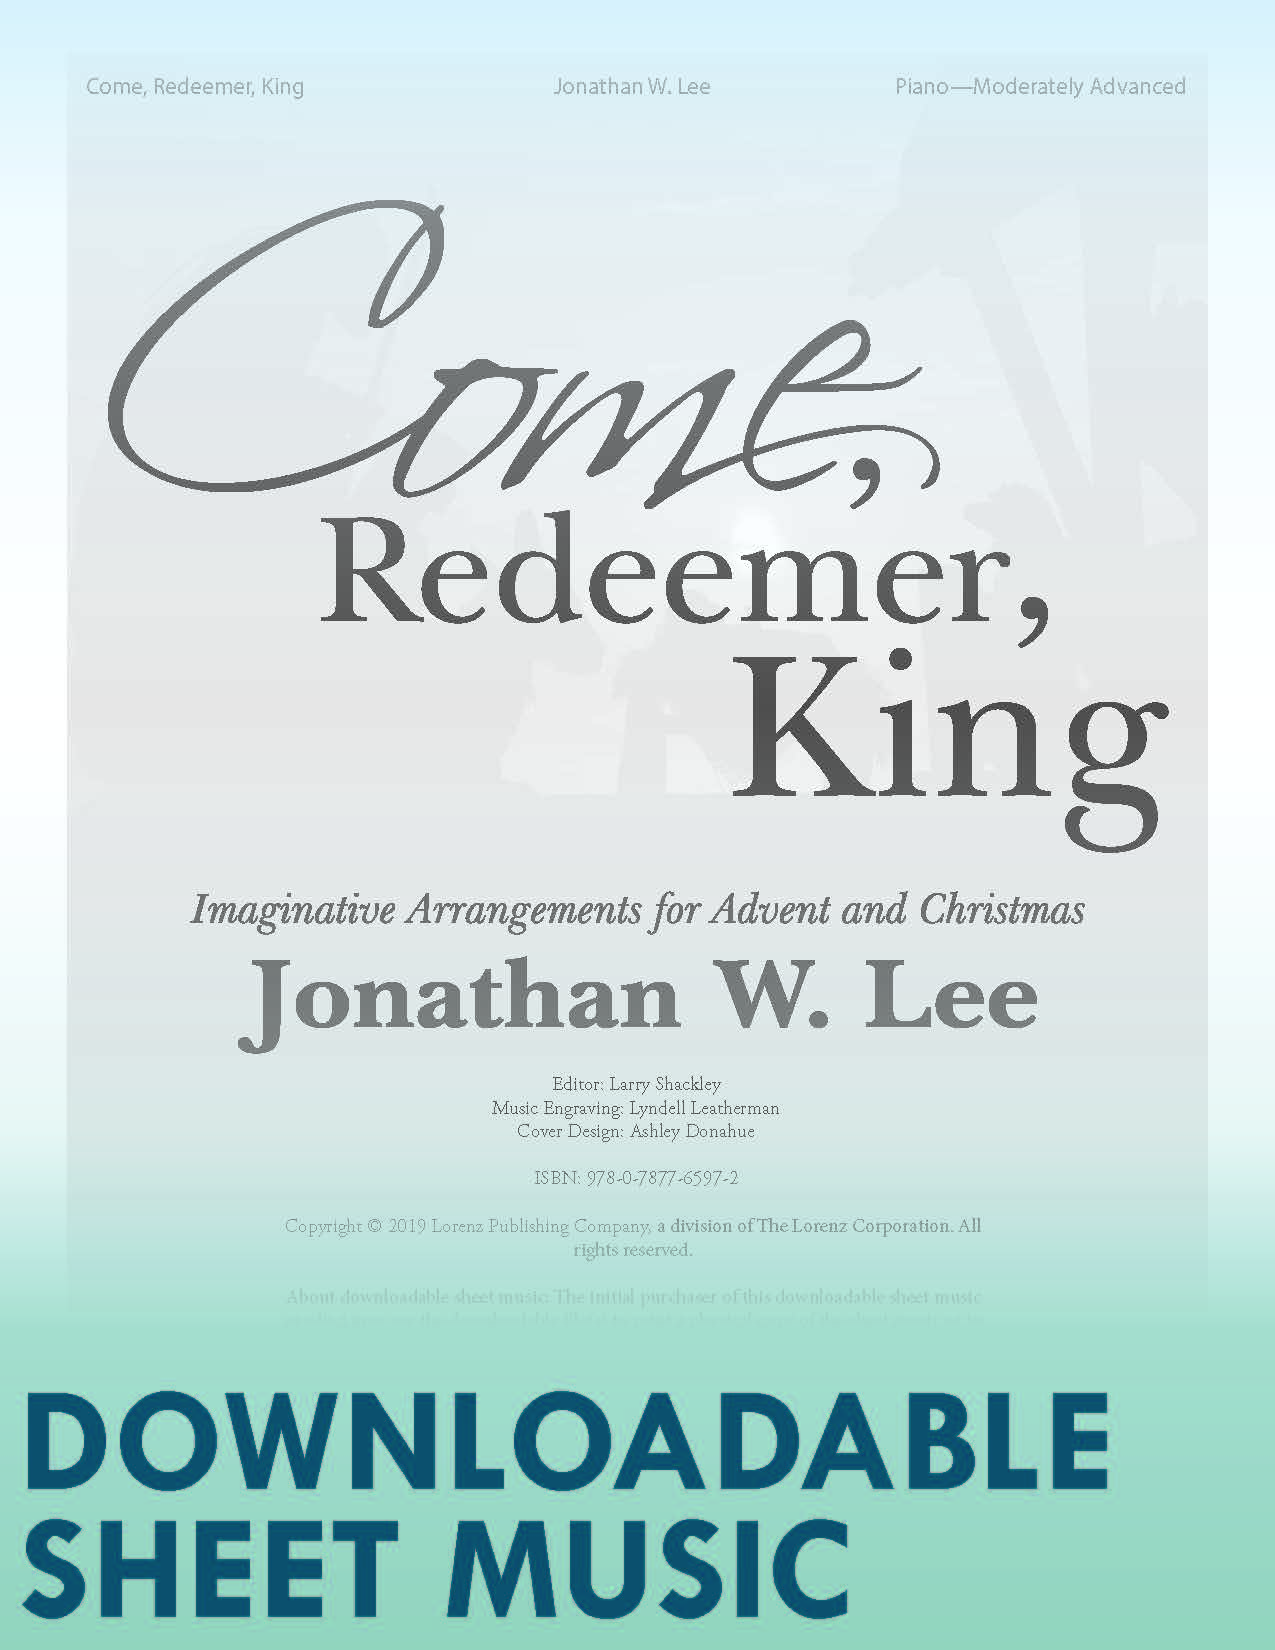 Come, Redeemer, King - Digital Download